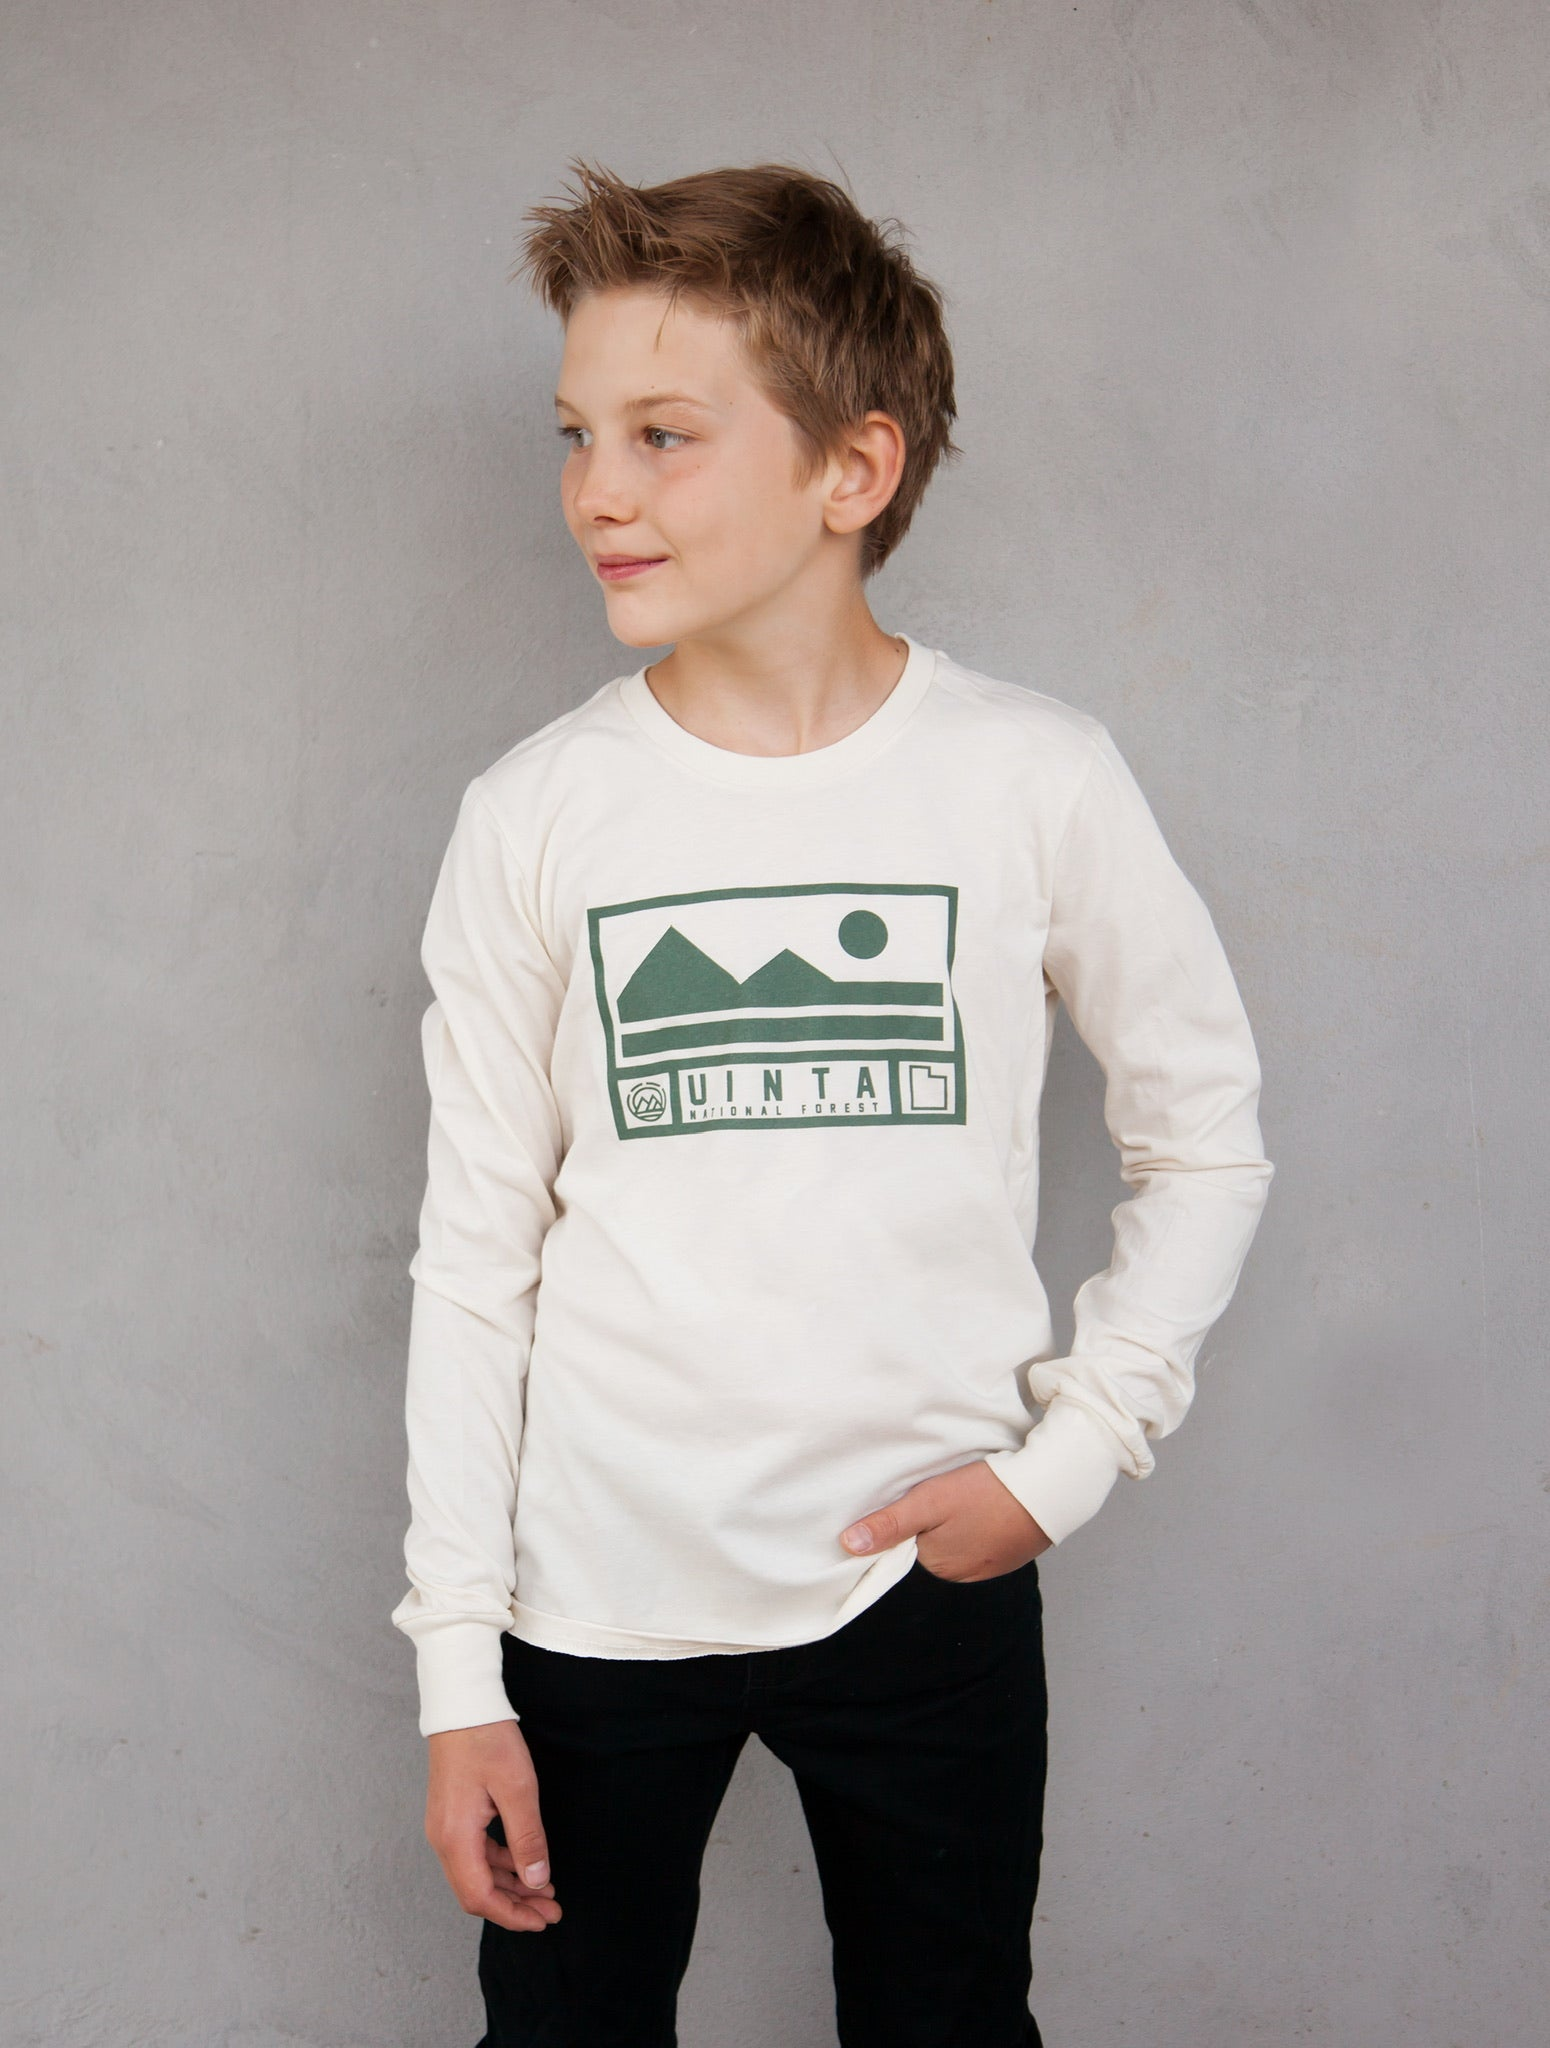 MAGO KIDS Misty Green Uinta Cream Long Sleeve T-Shirt